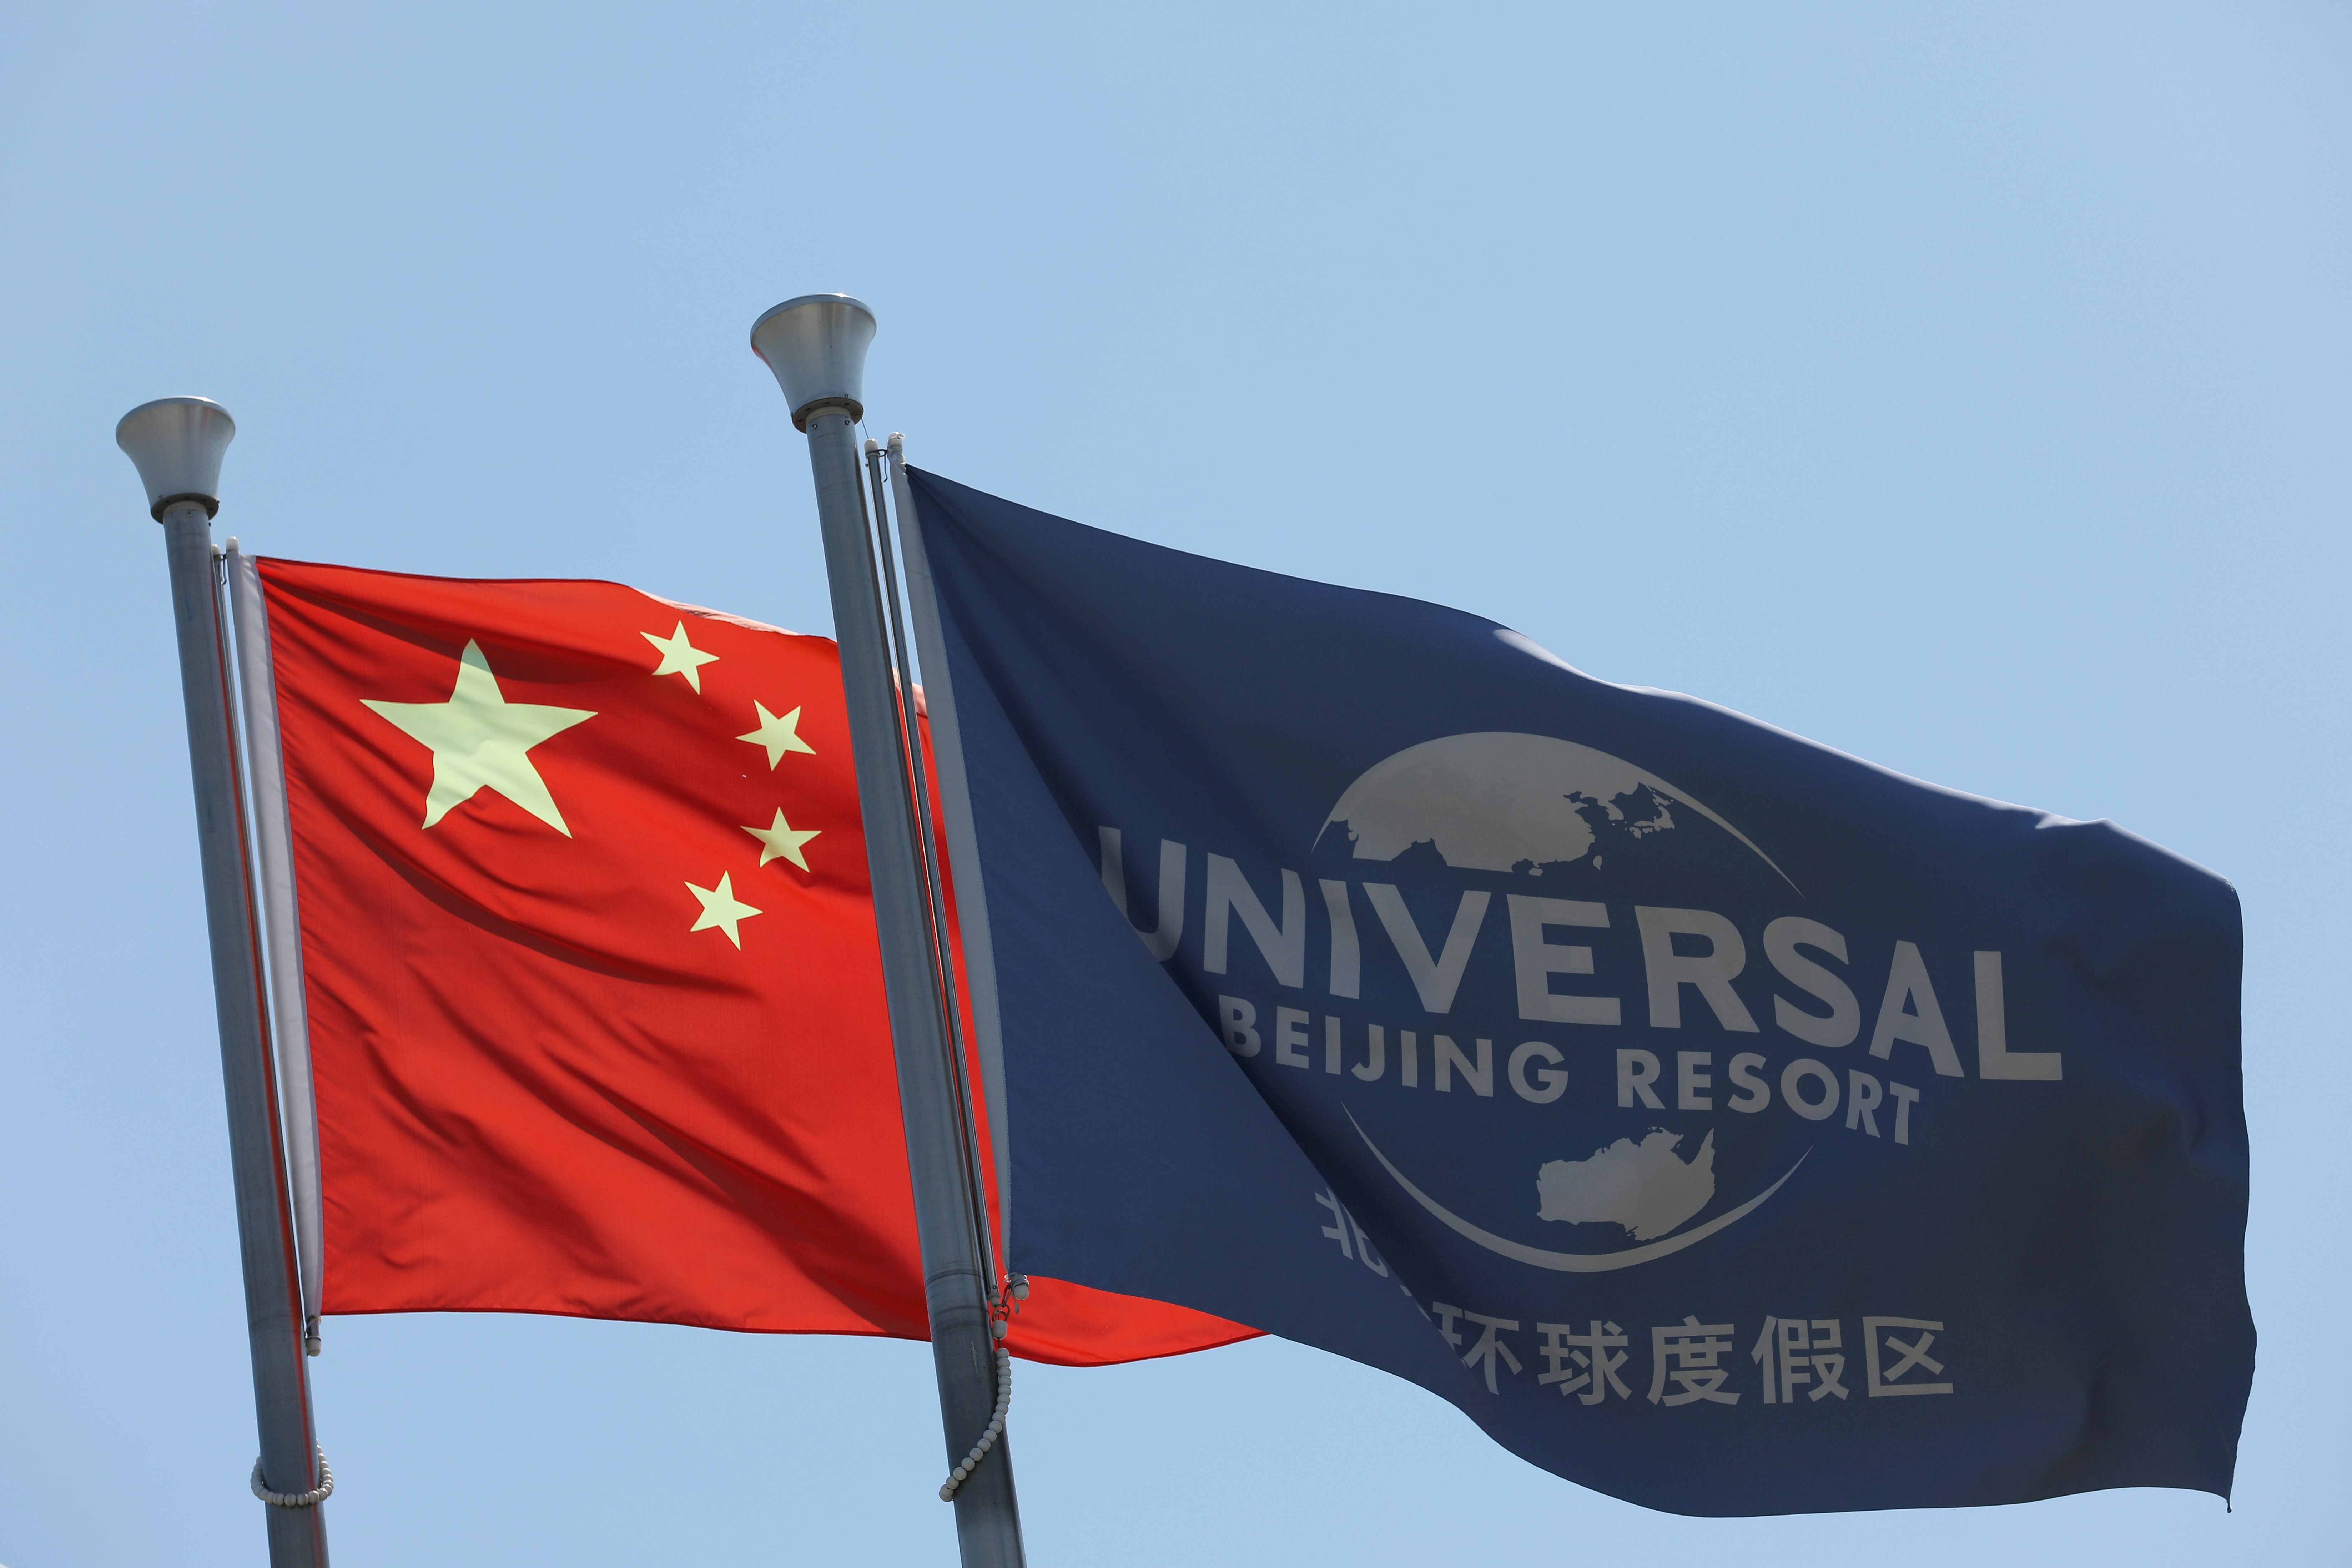 Chinese national flag flutters next to a flag of Universal Beijing Resort, ahead of the resort's opening in Beijing, China, August 27, 2021. REUTERS/Tingshu Wang/File Photo